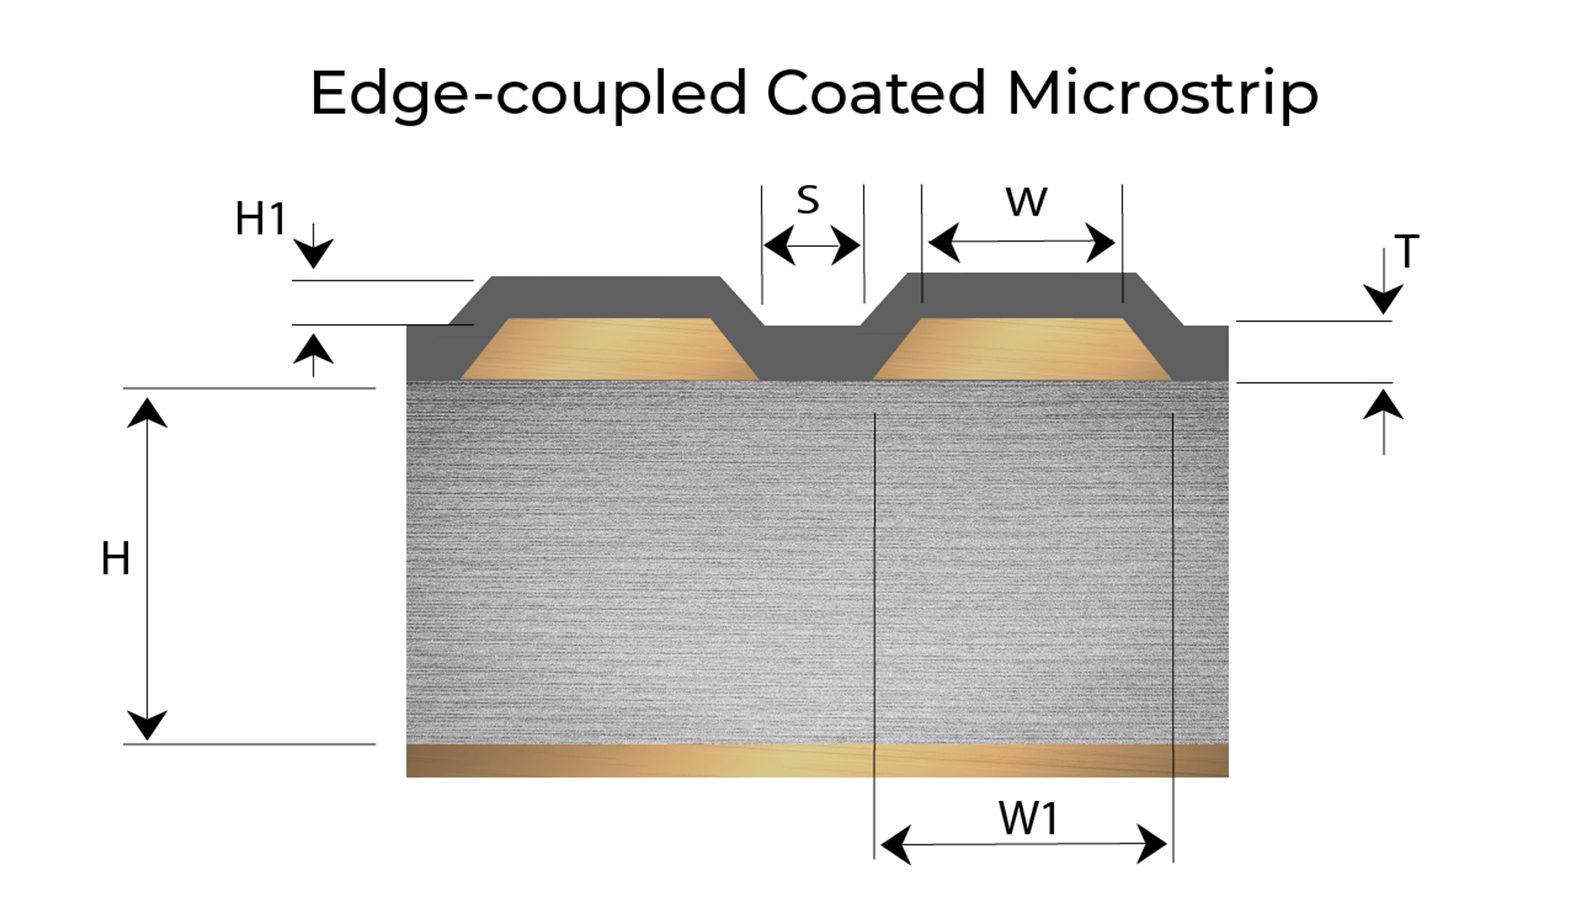 Edge-coupled Coated Microstrip